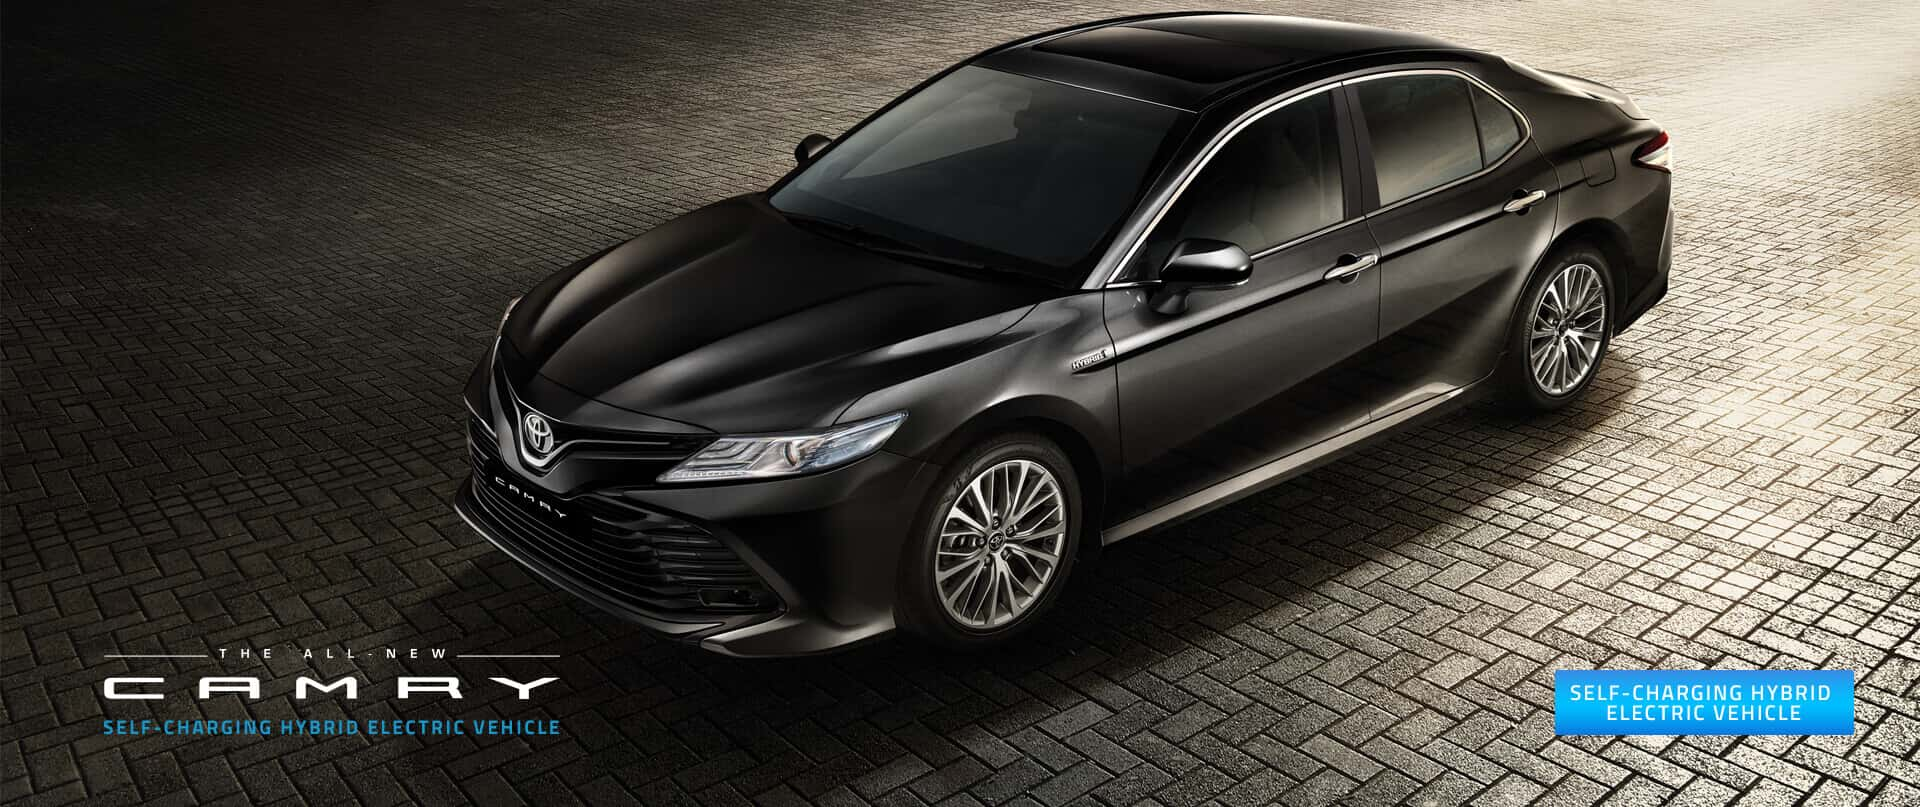 The All New Camry Self-Charging Hybrid Electric Vehicle